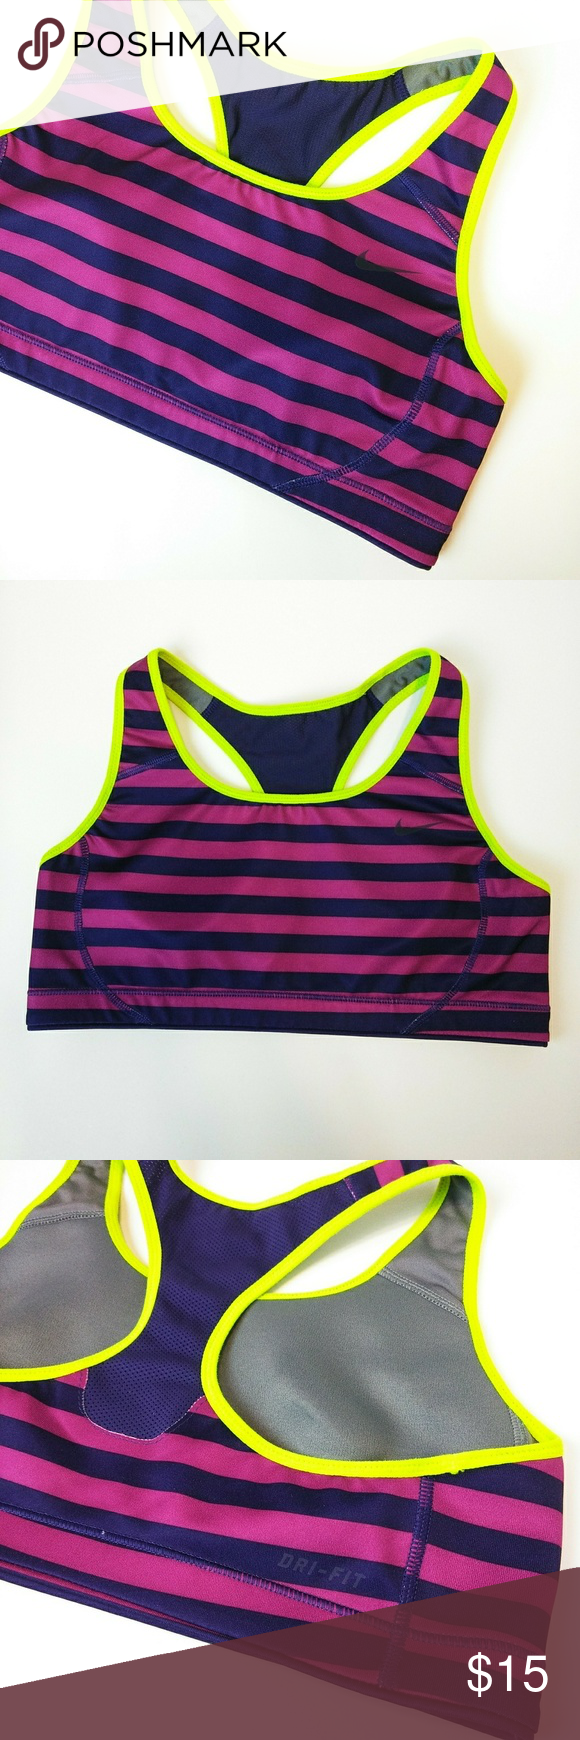 ae0d835796f73 Nike Dri Fit Victory Shape High support Sports Bra Nike Drive fit victory  shape Sports Bra